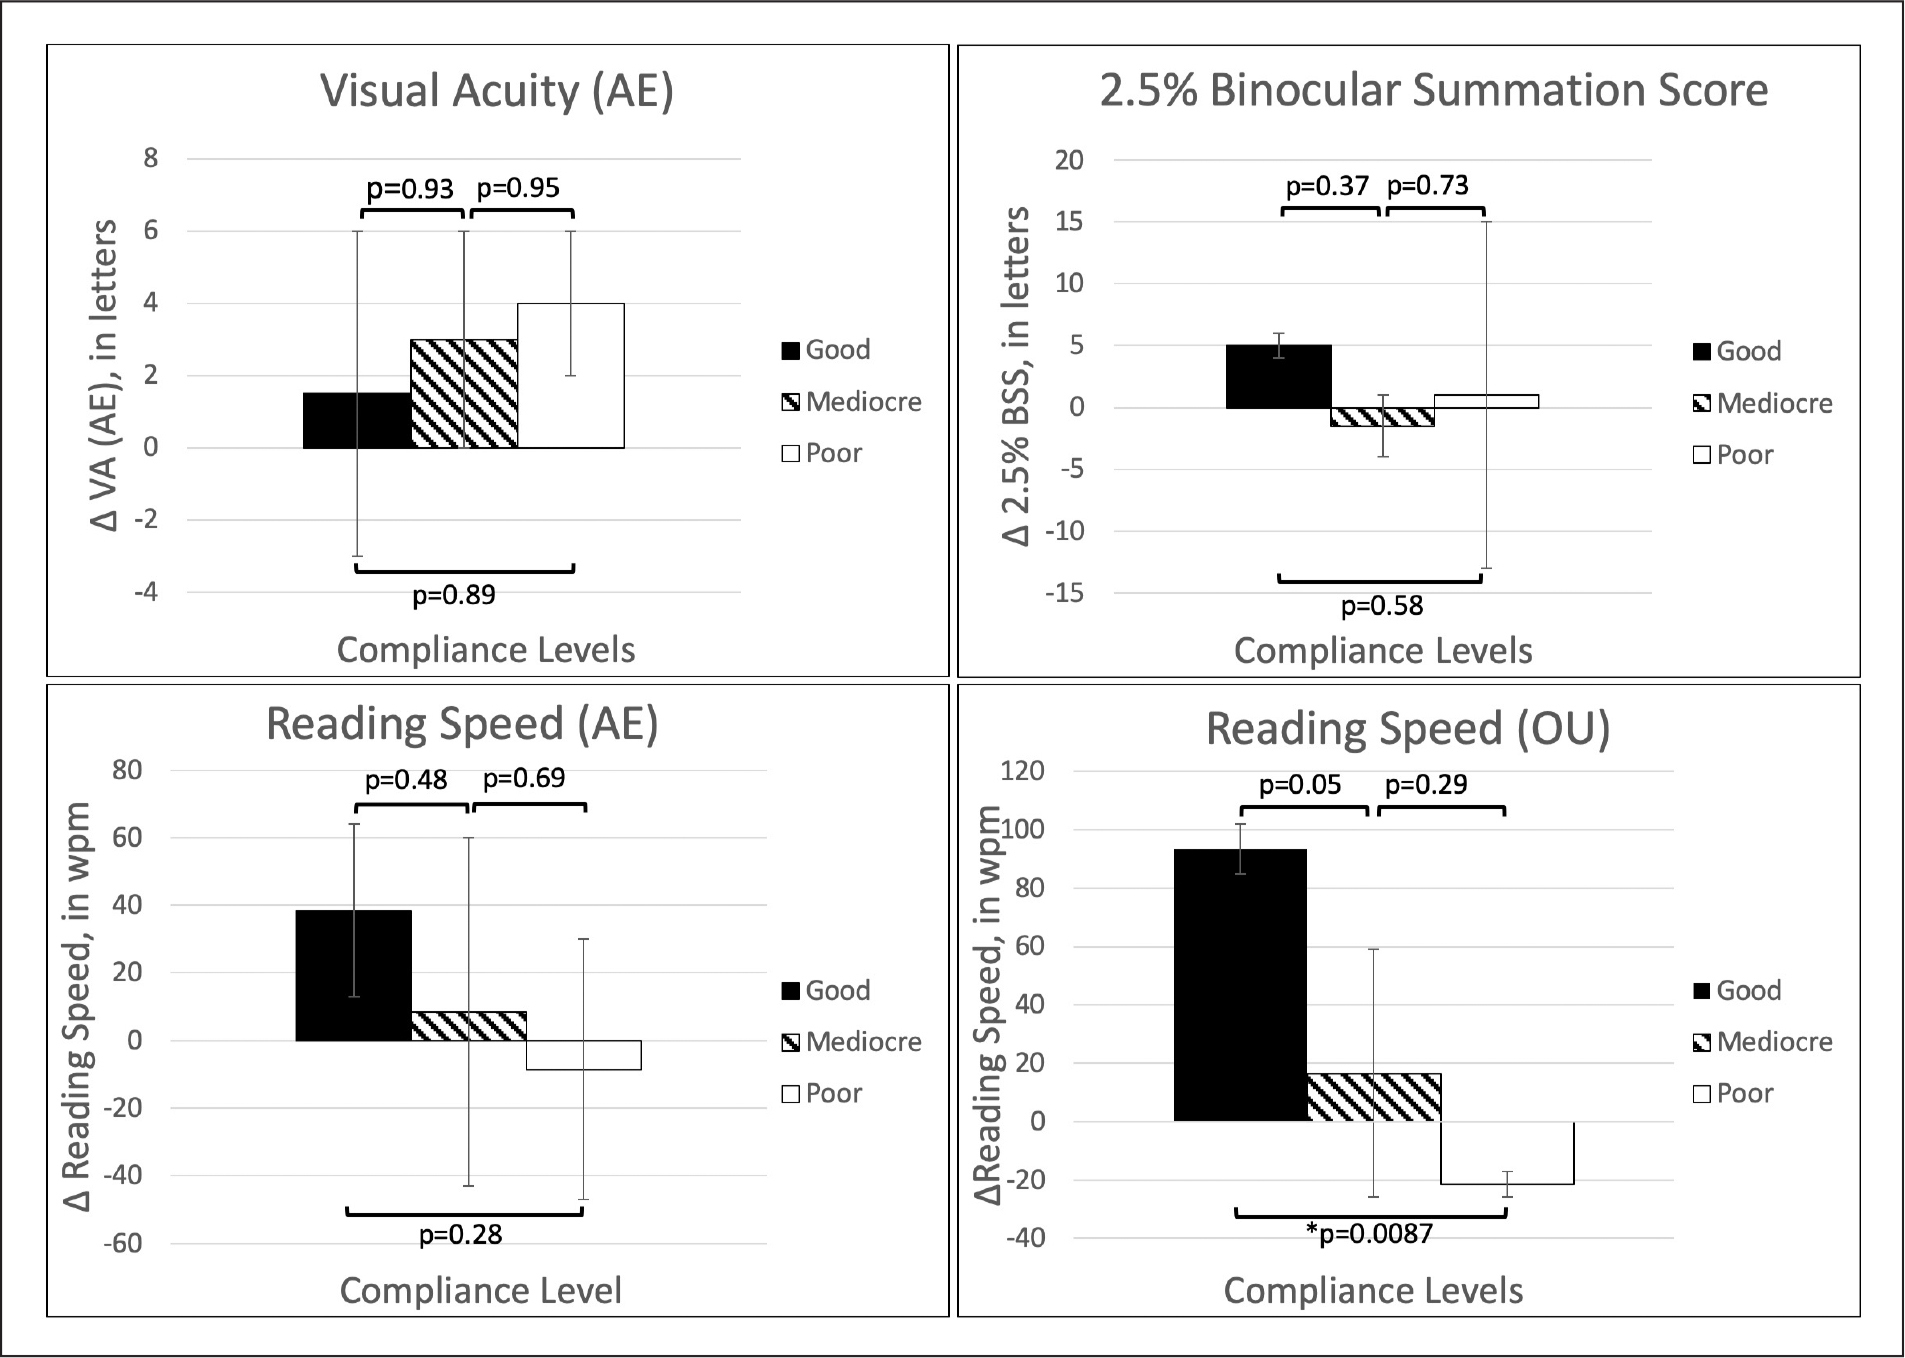 Visual function by compliance group. Change in visual acuity (VA), binocular summation score (BSS), and reading speed (both eyes [OU], amblyopic eye [AE]) by compliance levels (good, mediocre, and poor) after 8 weeks of binocular perceptual learning. Error bars show mean ± standard error. Binocular reading speed was the only factor that significantly varied with compliance level (93.5, 16.5, and −21.5 wpm for good, mediocre, and poor compliance, respectively). Compliance level did not have an effect on visual function after monocular perceptual learning.